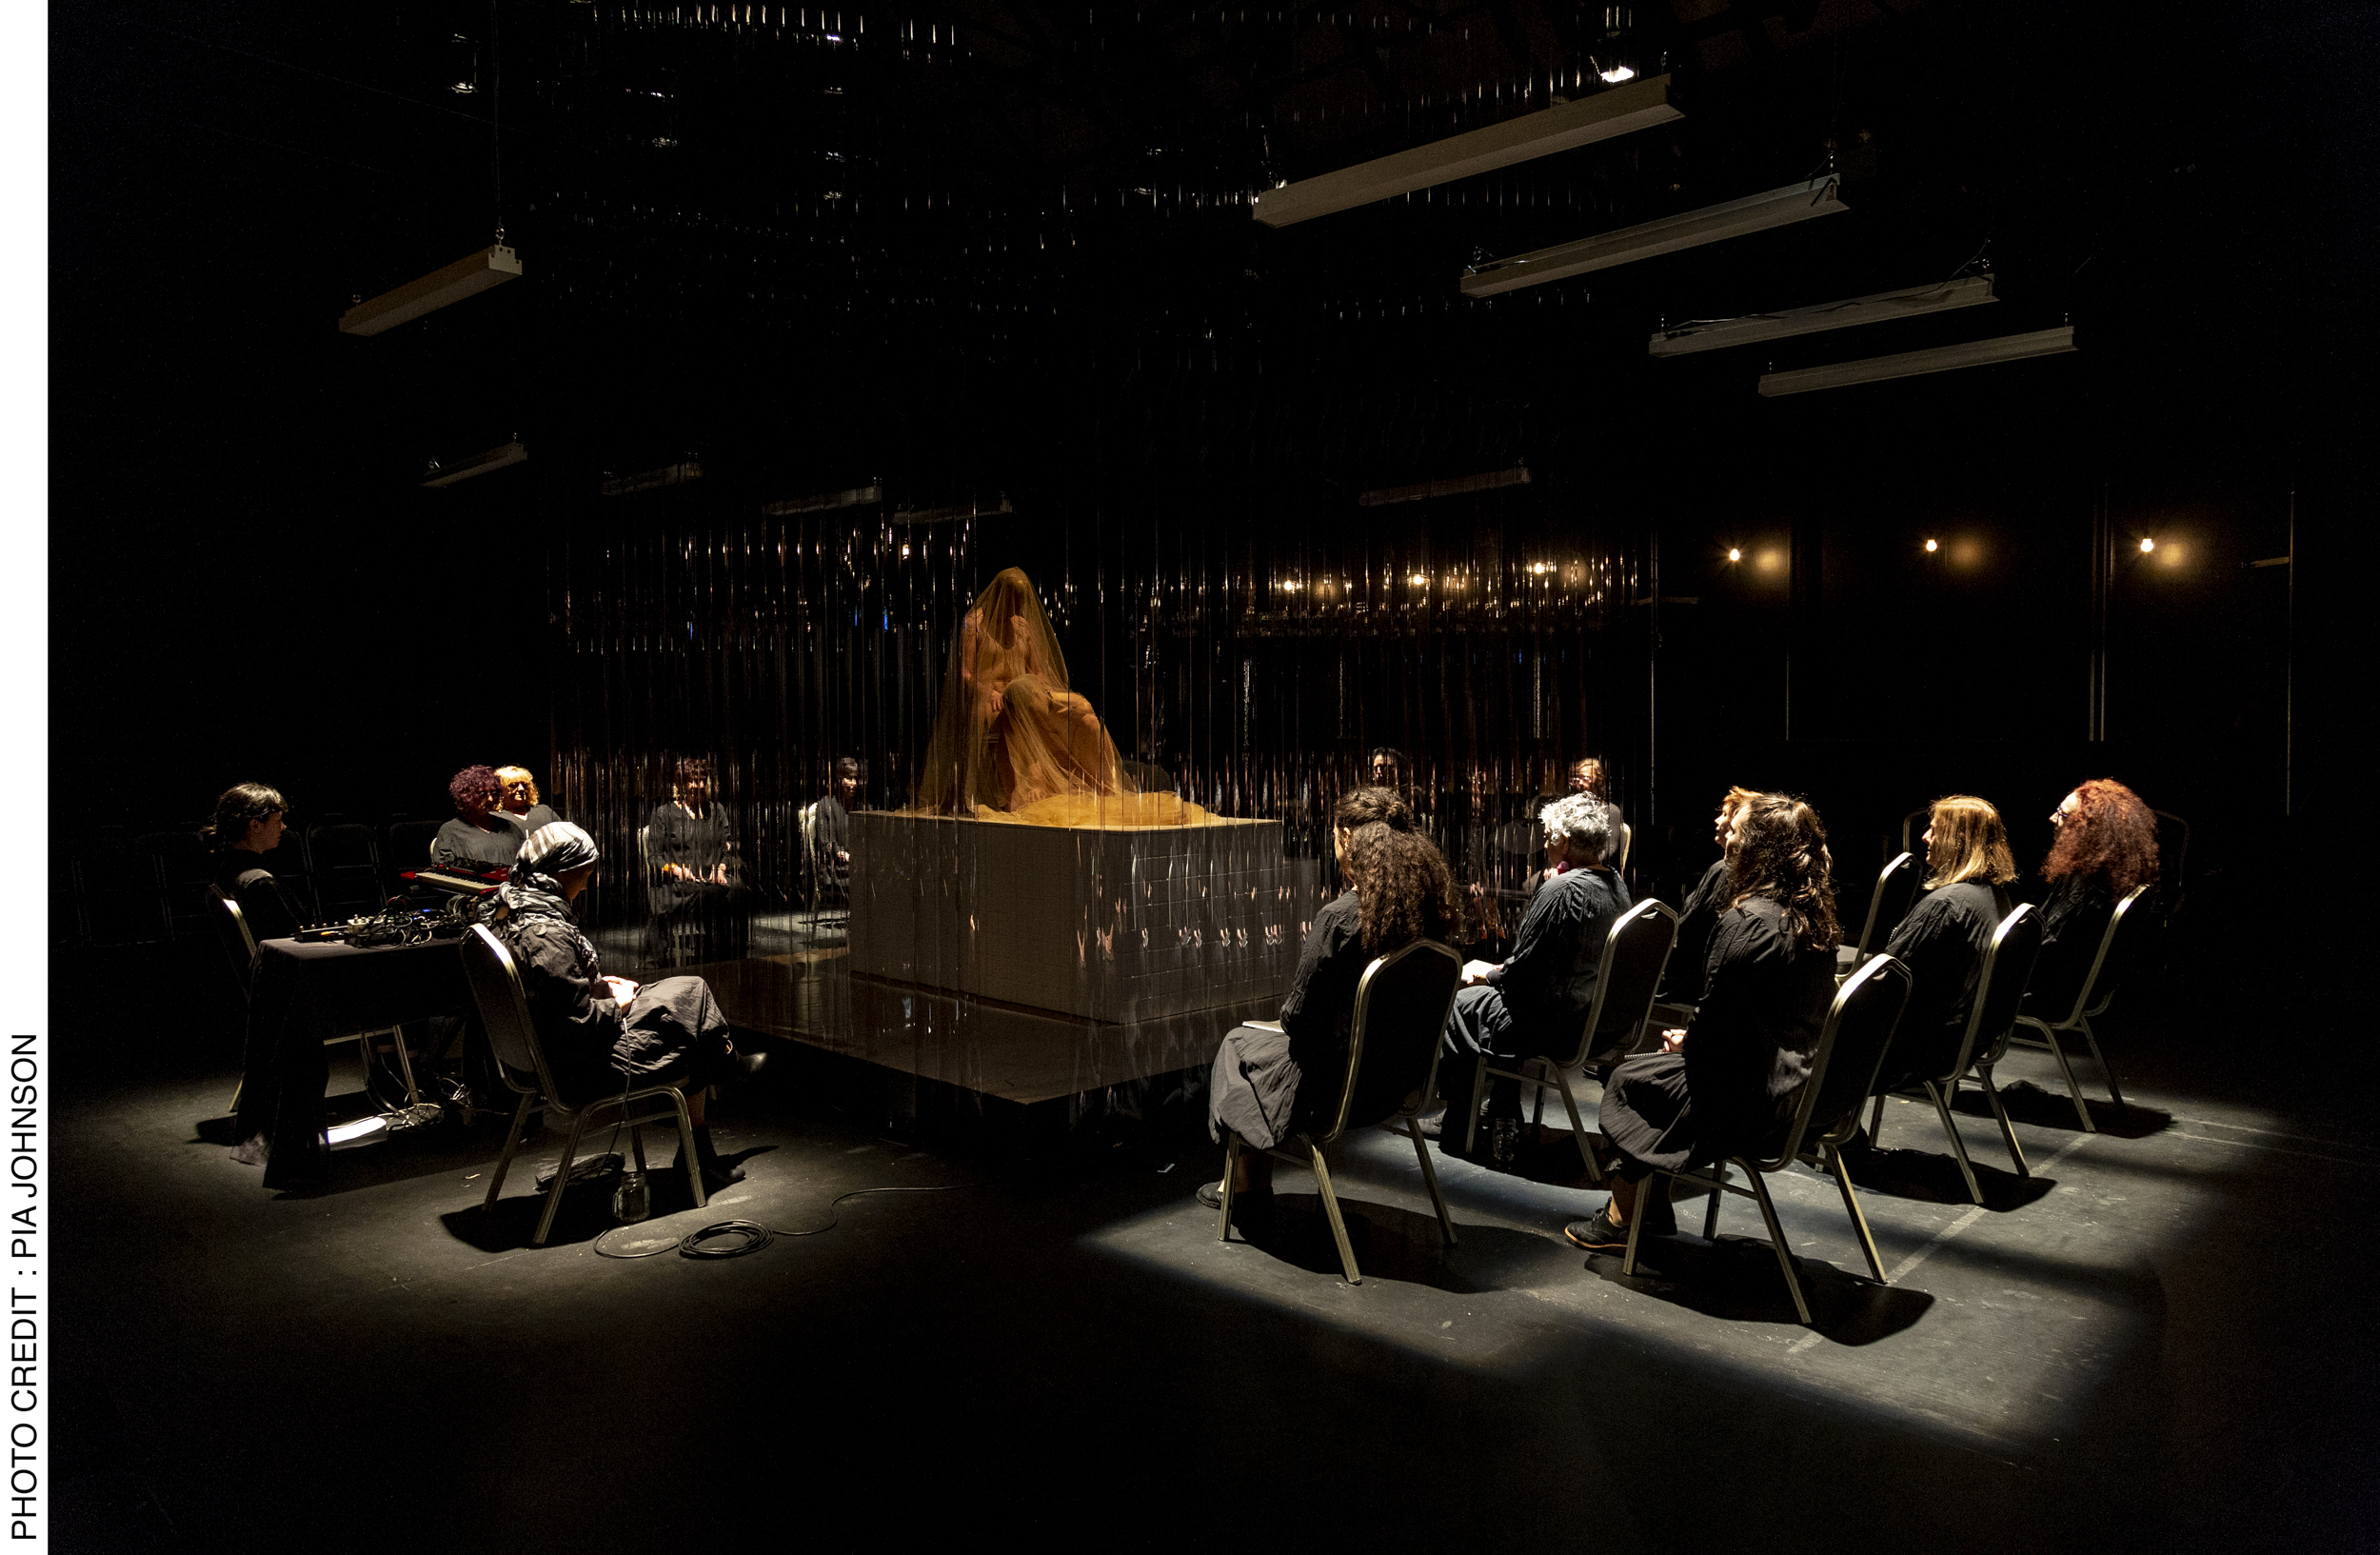 <p>The choir and musicians, including Carolyn Schofield on electronics and voice artist Jenny Barnes, surround performers Lauren Langlois and Yoni Prior on the central raised platform of the stage.  Photo Credit: Pia&nbsp;Johnson.</p>